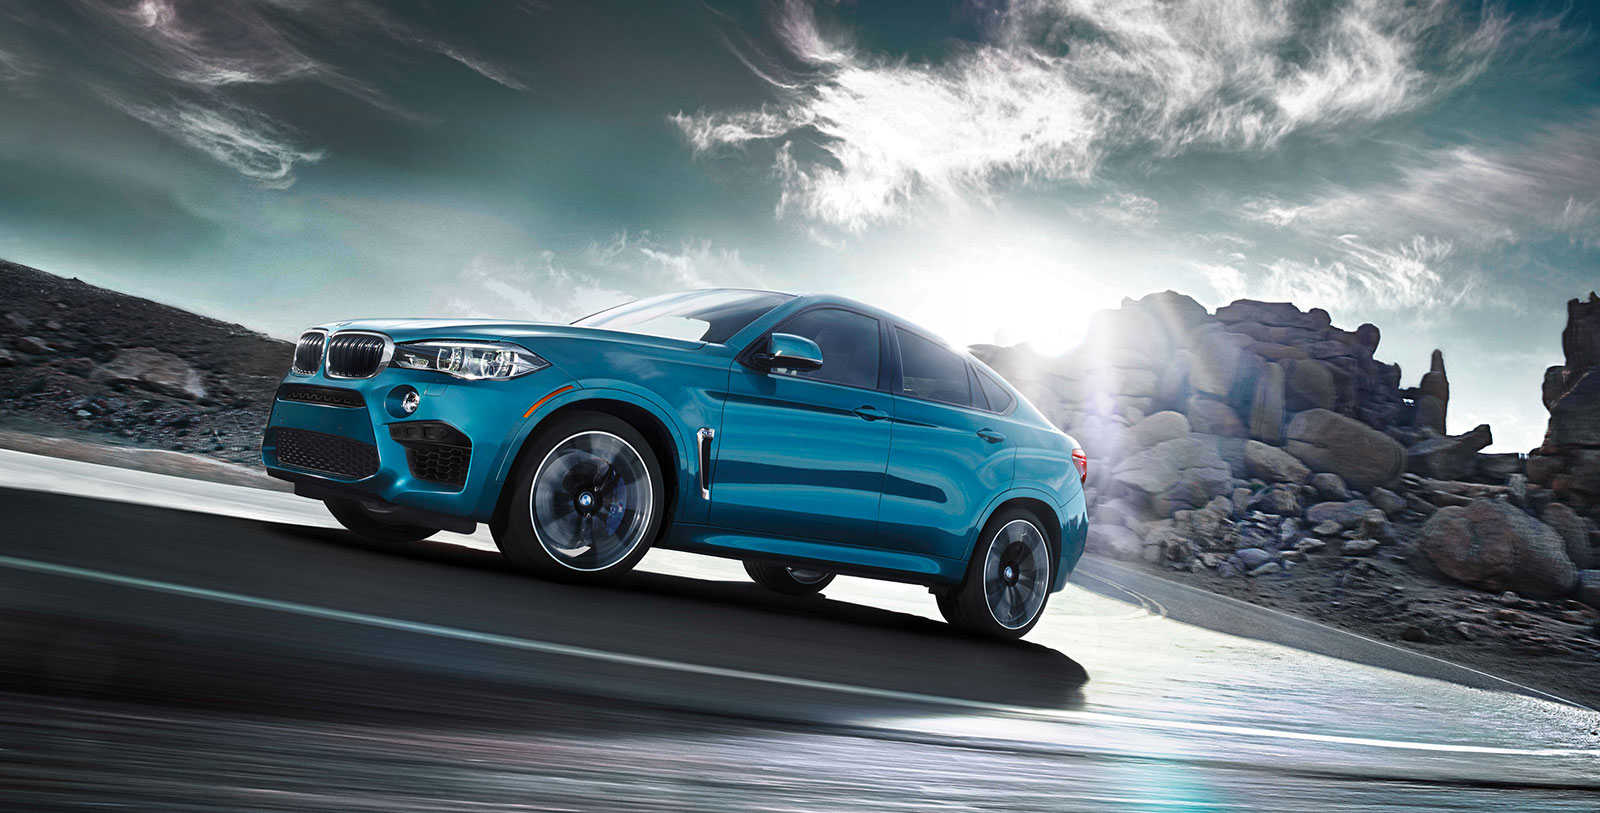 Bmw X6 Build Your Own Series Coupe Vs 2018 Bmw M4 Coupe